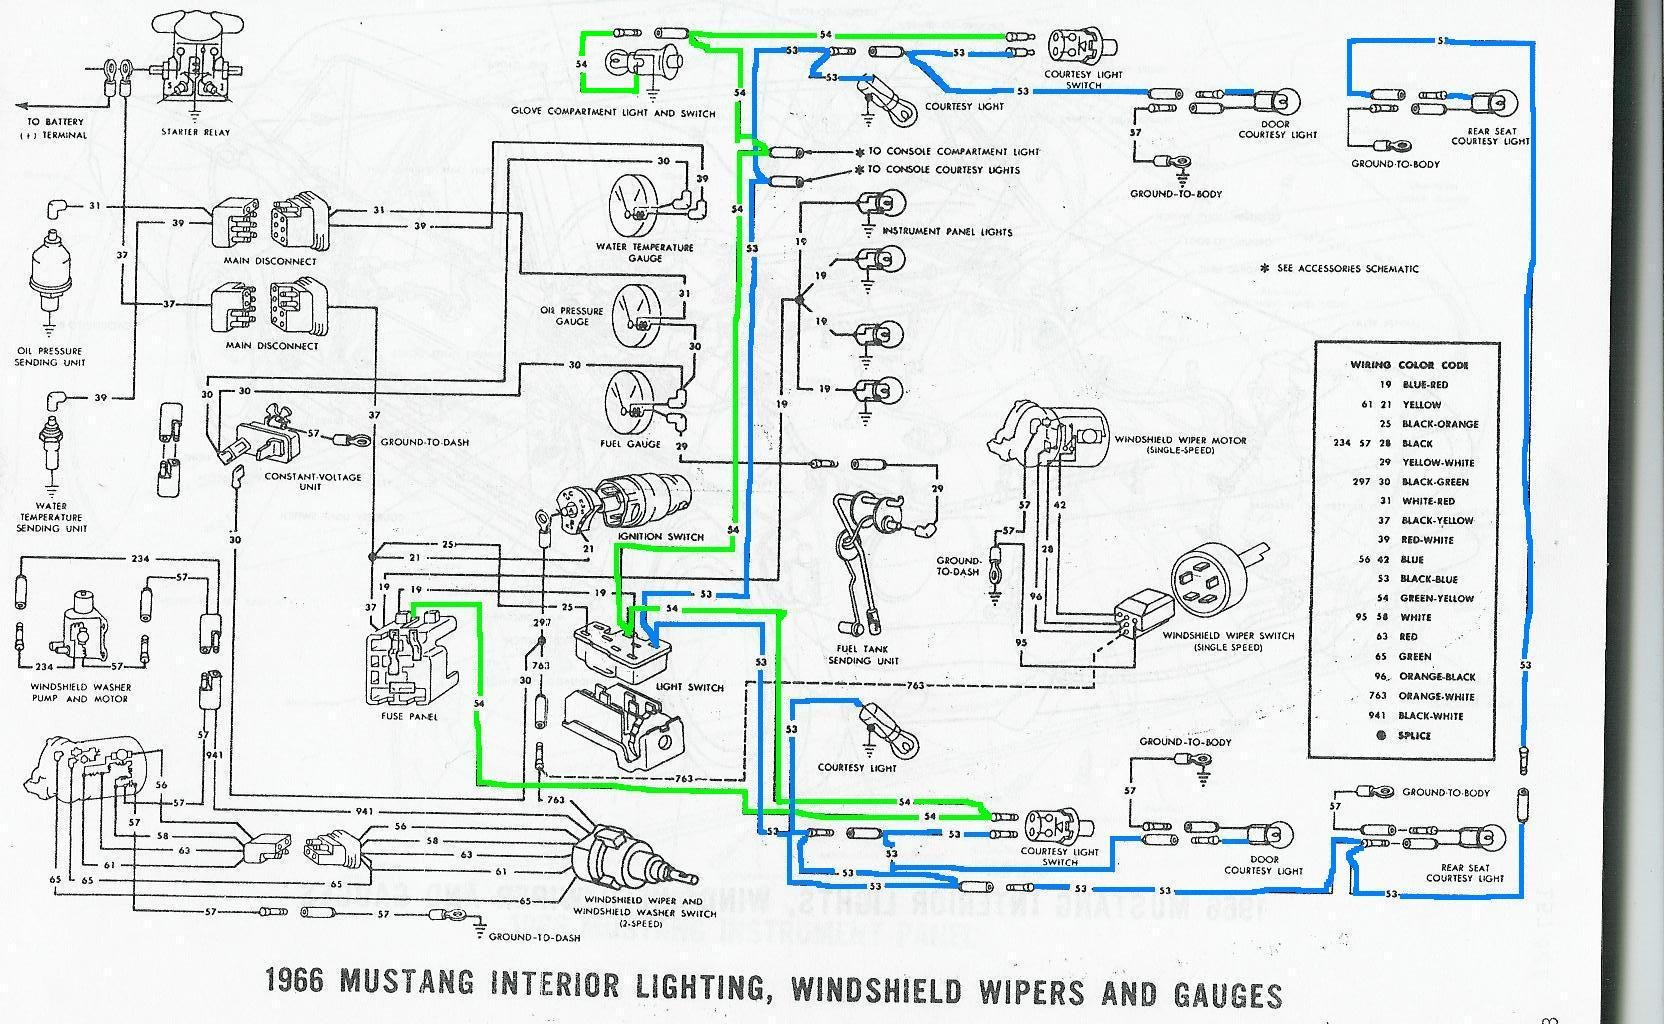 66 Pontiac Lemans Wiper Wiring Diagram Trusted 1967 Le Mans Mustang Courtesy Lights Wire Center U2022 Vibe